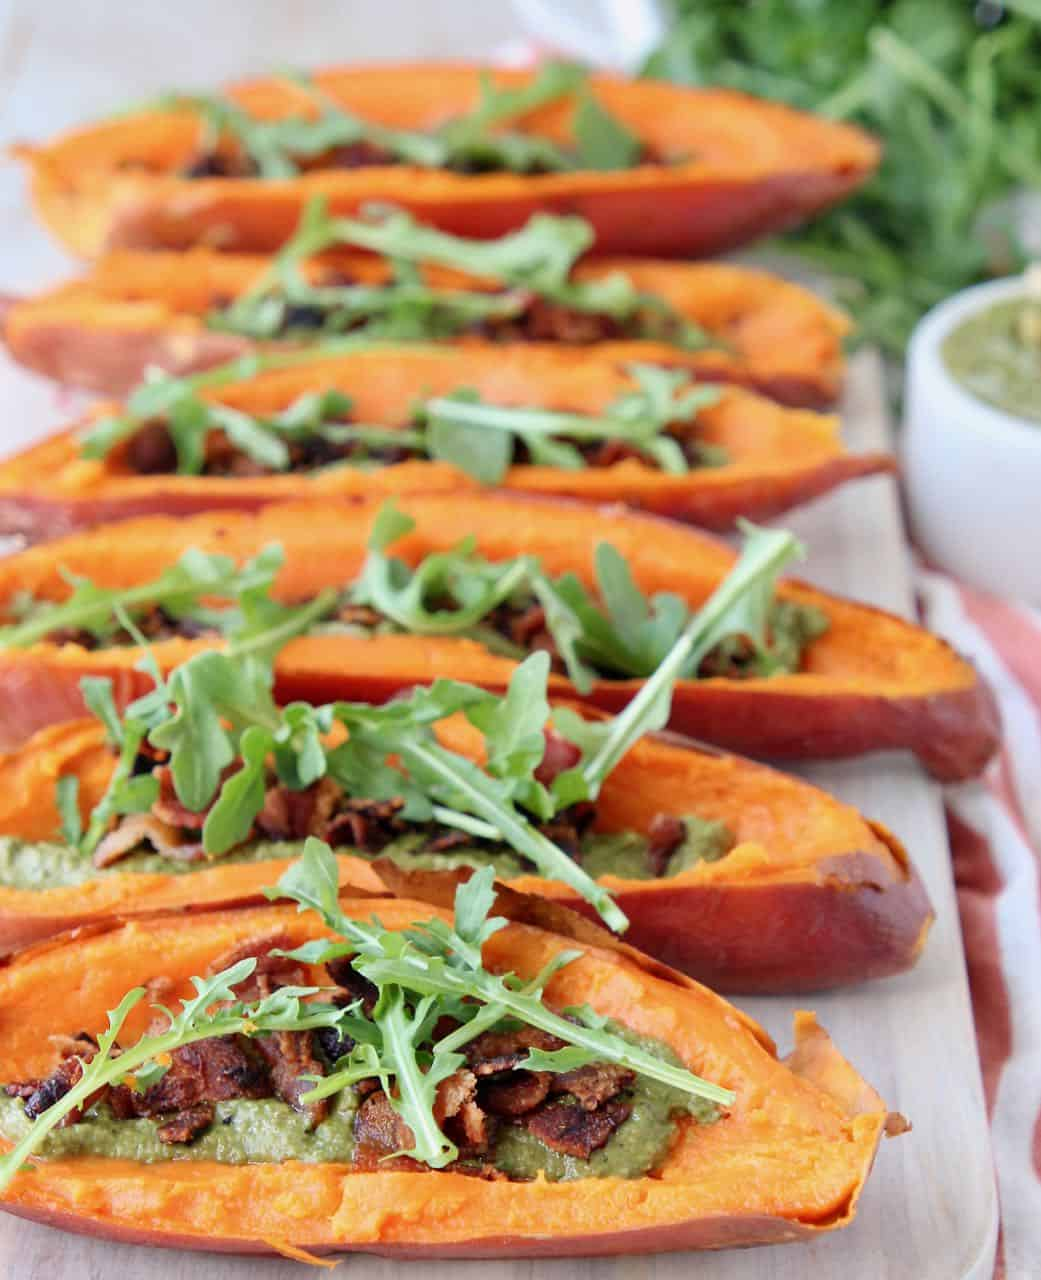 Sweet potato skins topped with arugula on wood cutting board